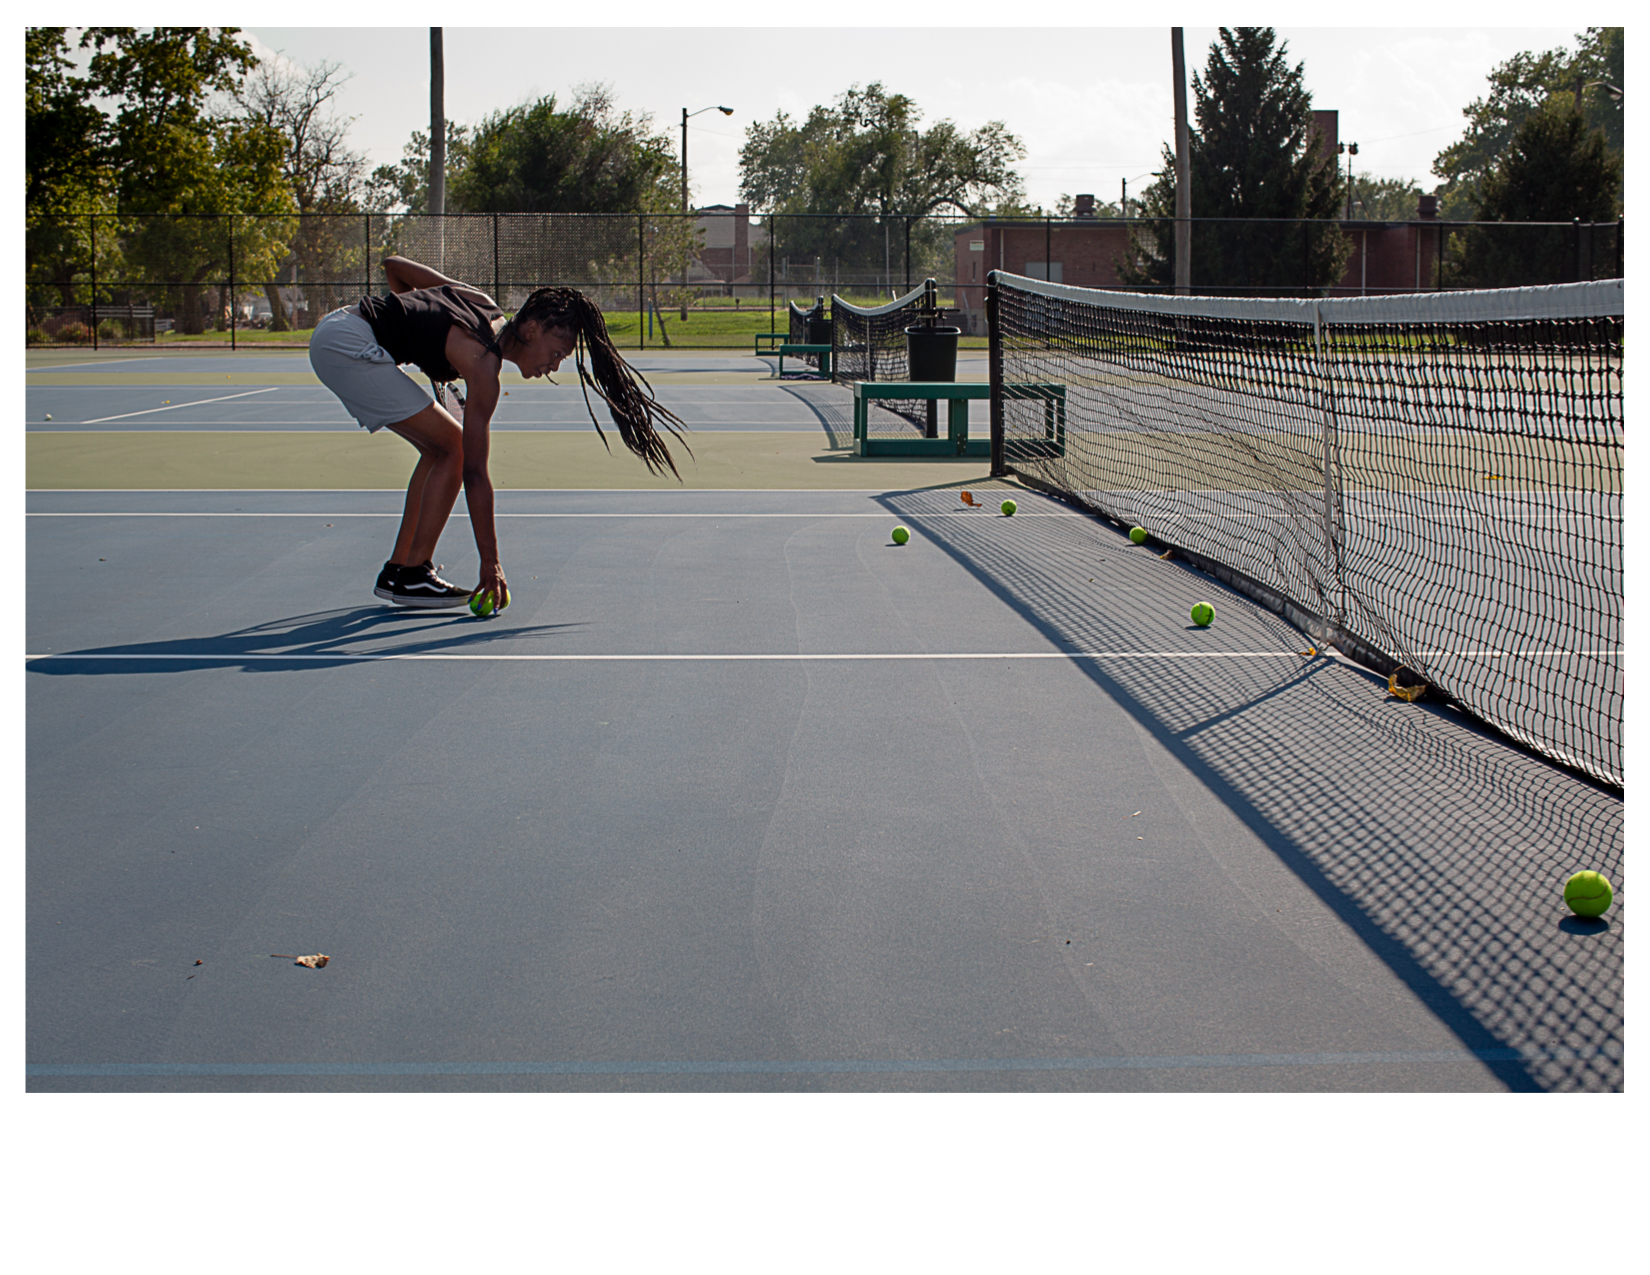 High School Tennis Player in Lincoln Park, East St. Louis, IL